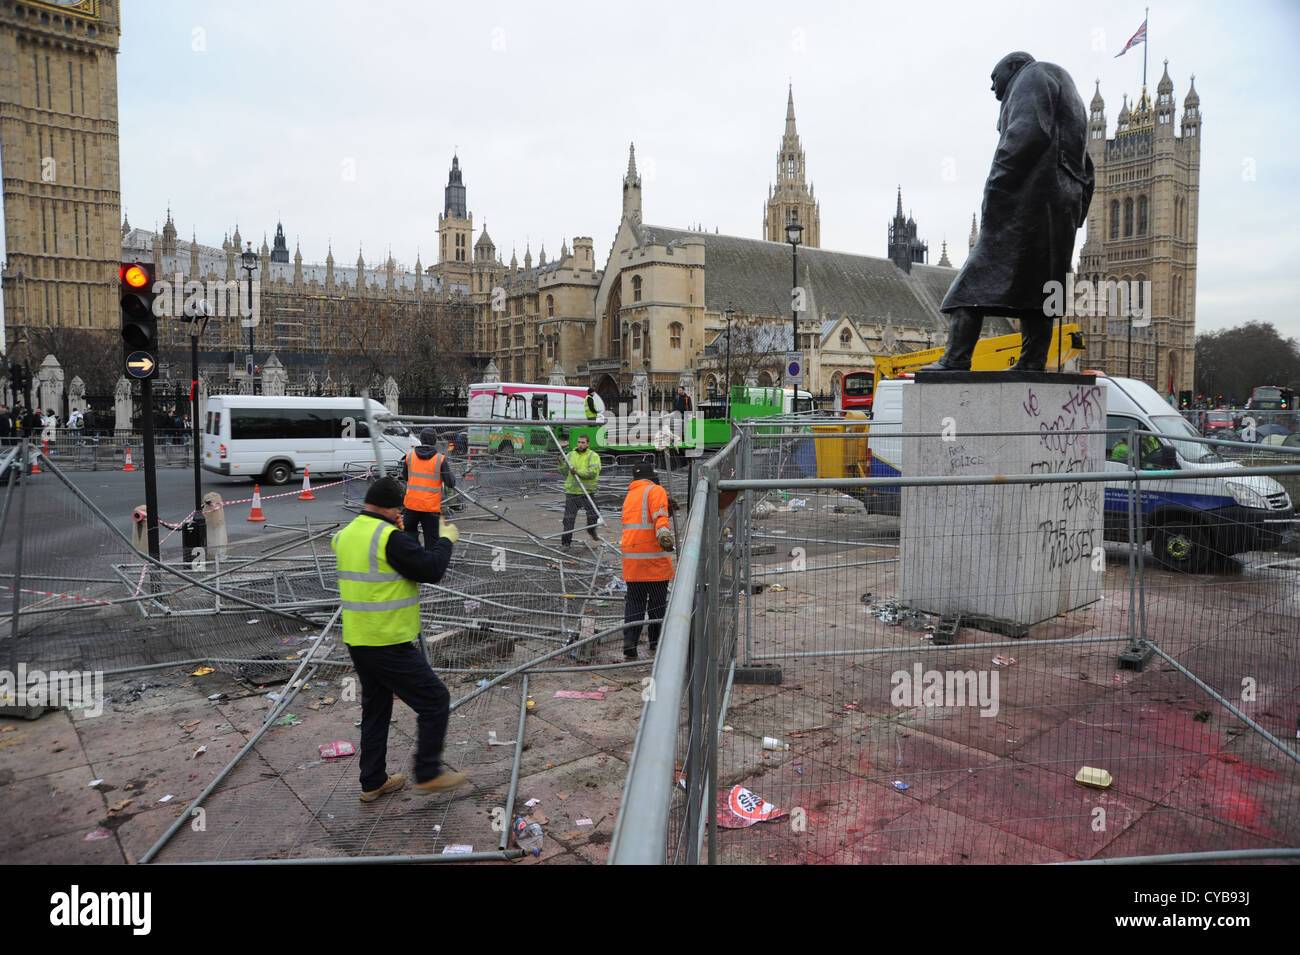 Parliament Square after student marches London UK - Stock Image